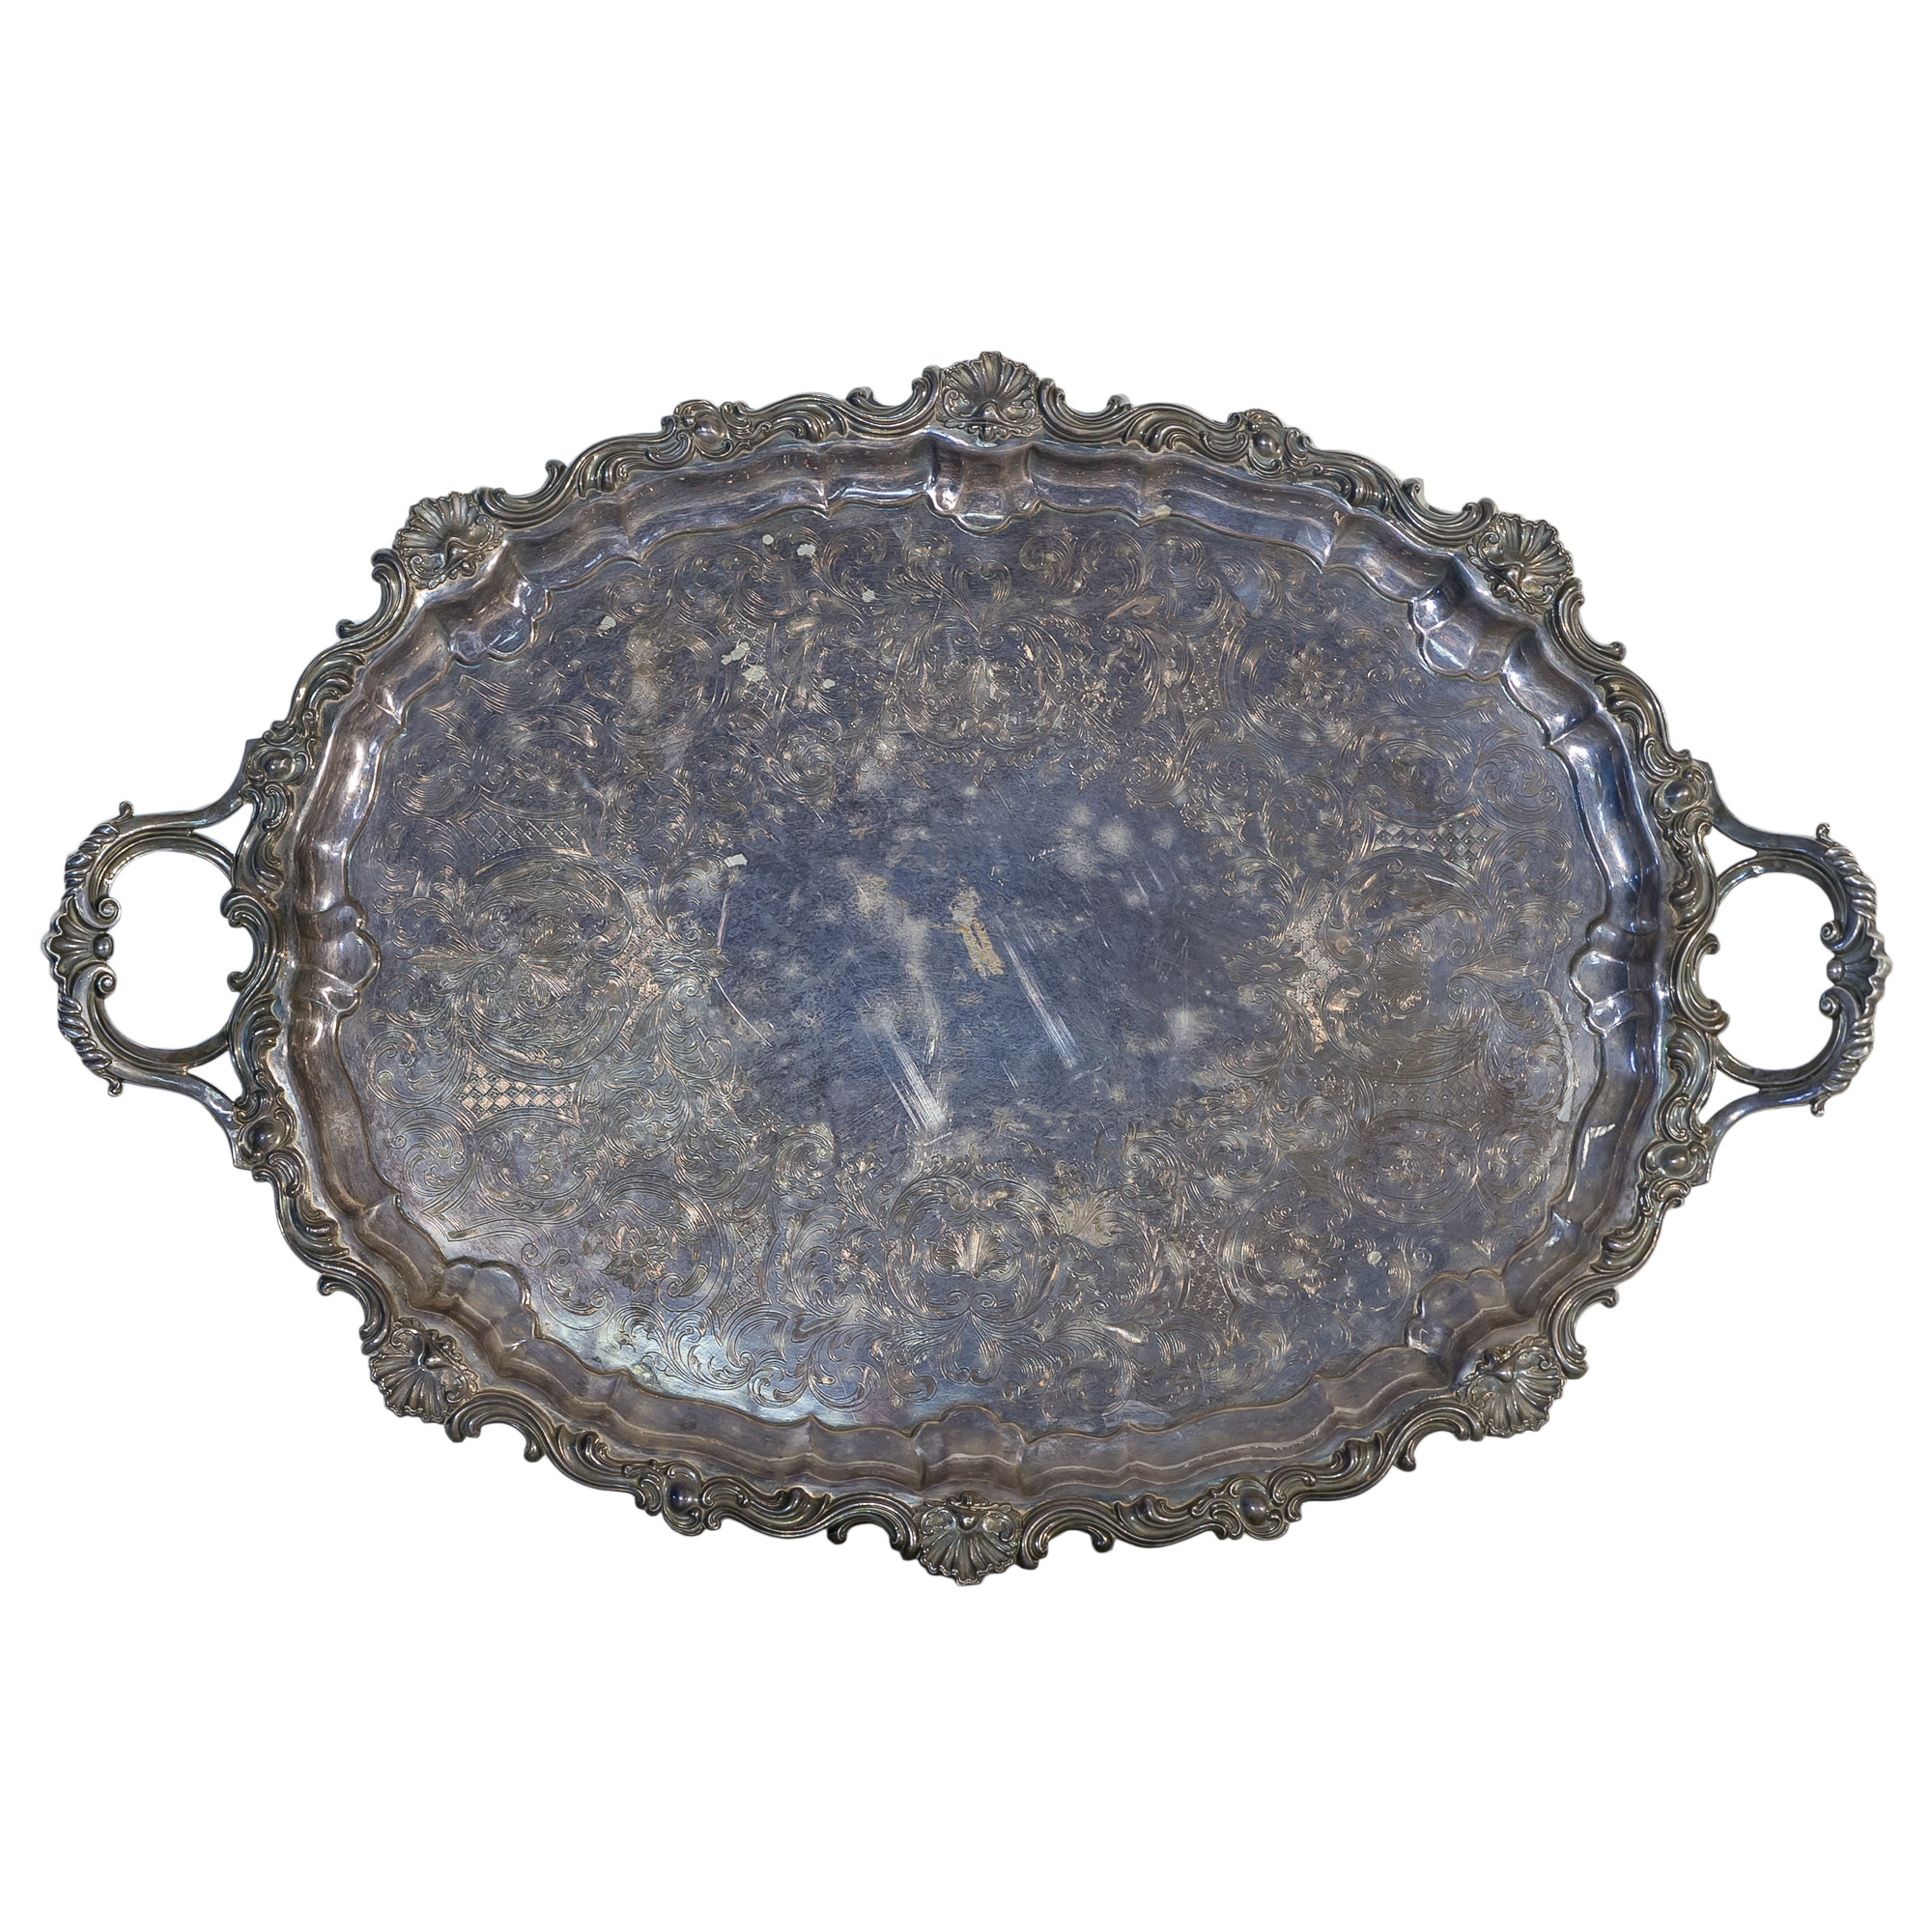 'Large T & J Creswick Silver Plate Butlers Tray'